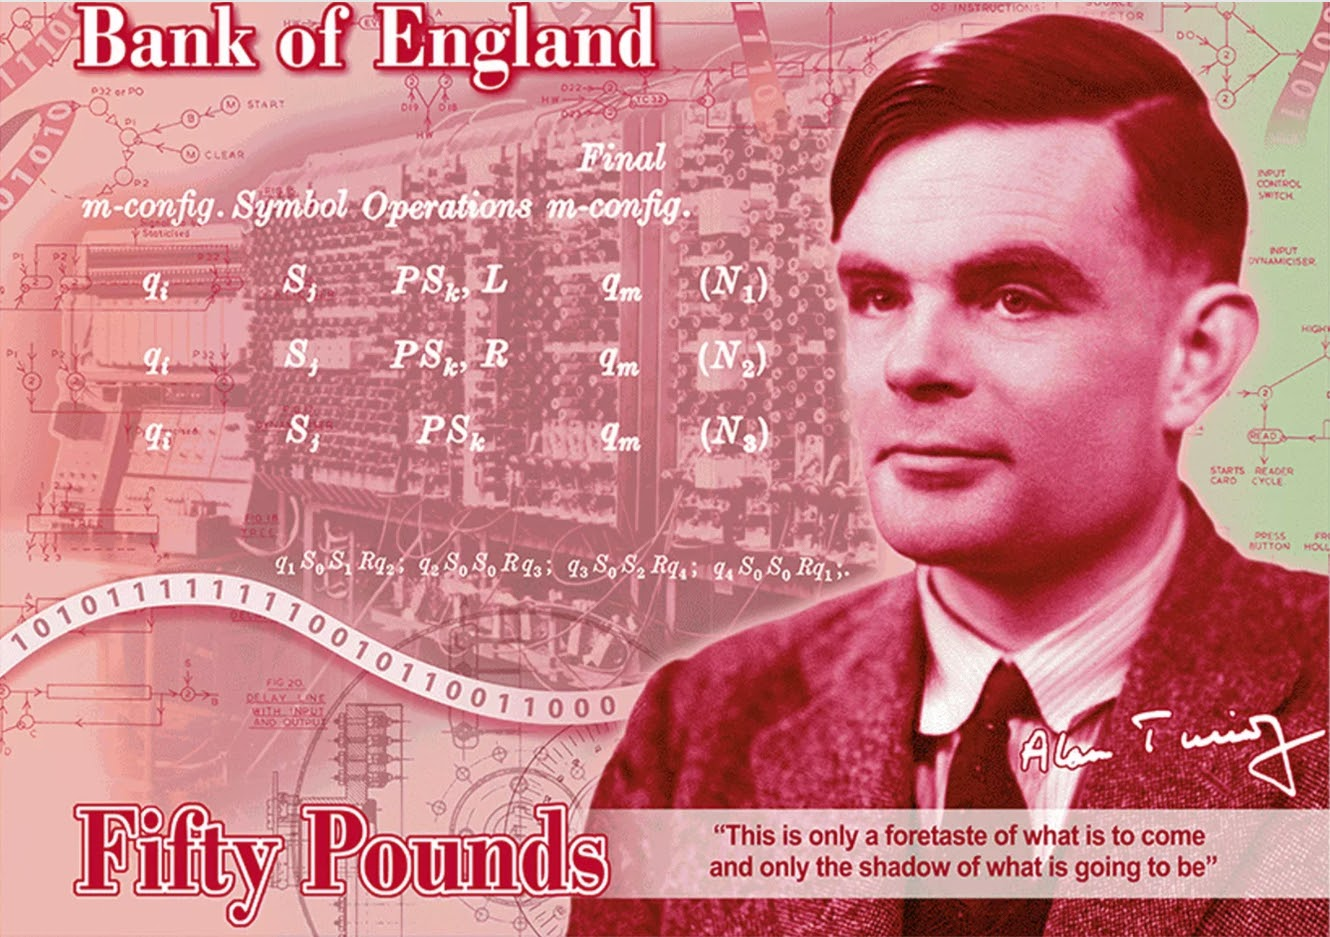 Alan Turing and the £50 note